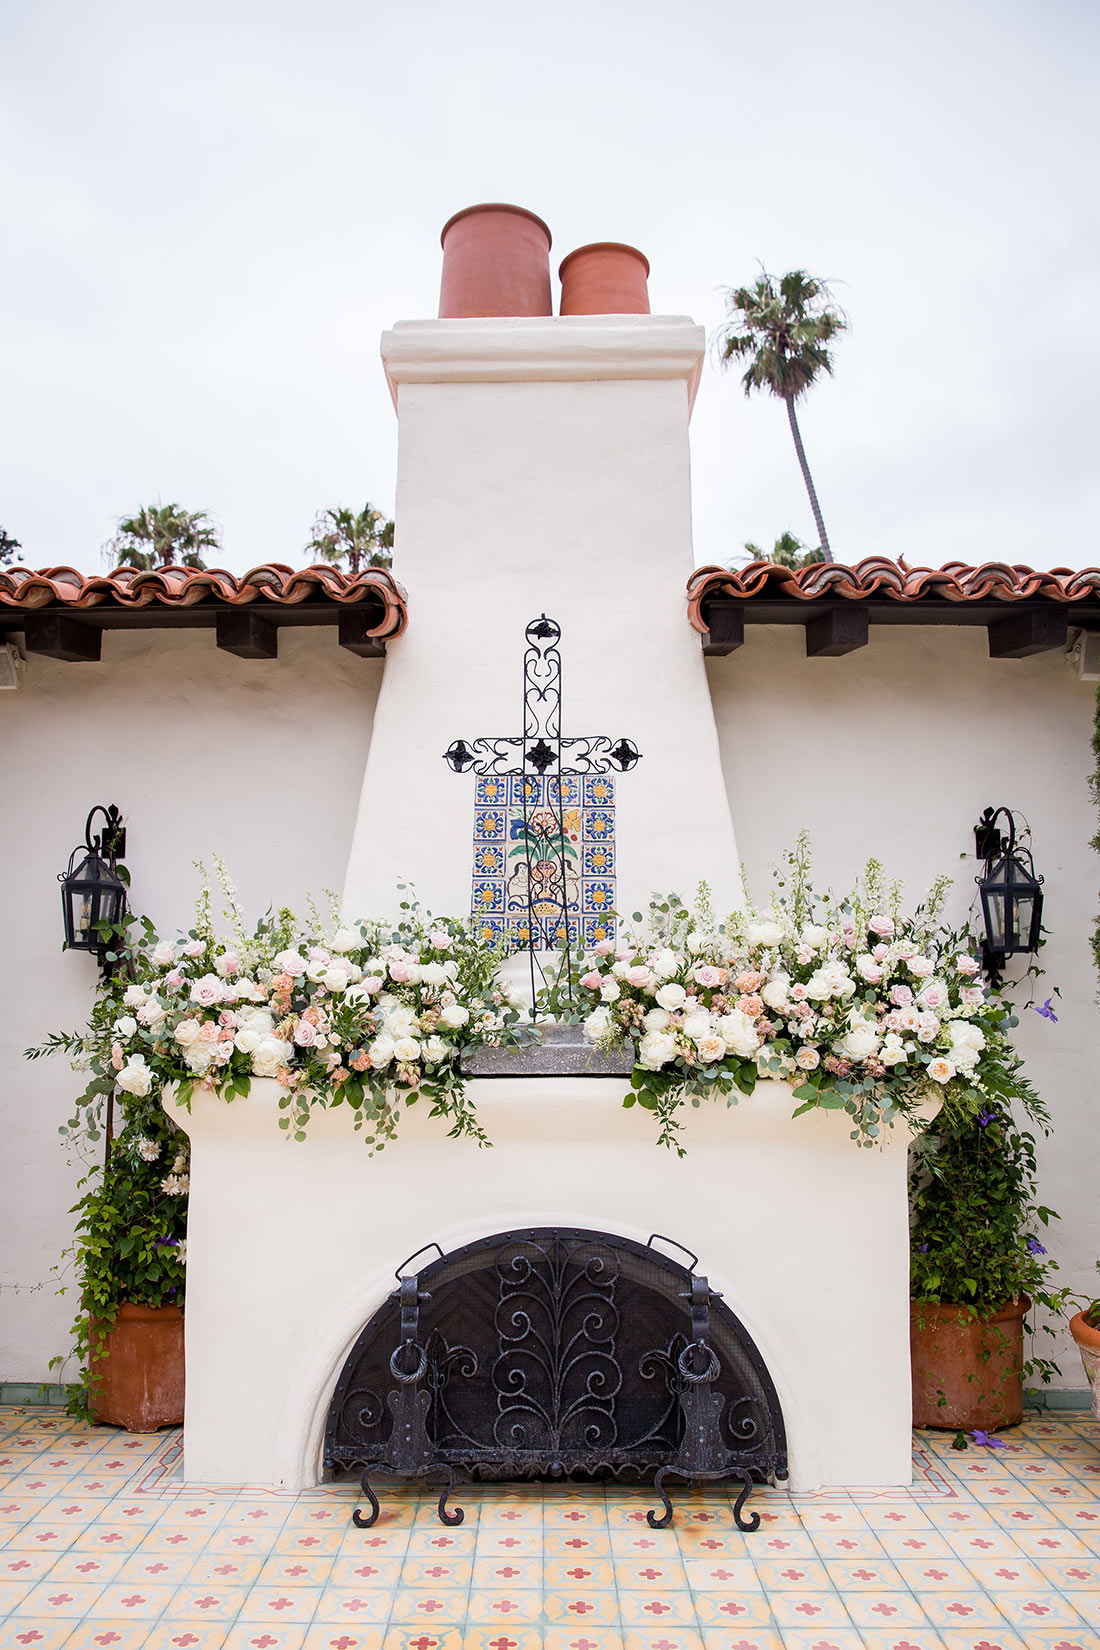 An image of a floral decorated fireplace for the Herbert Wedding